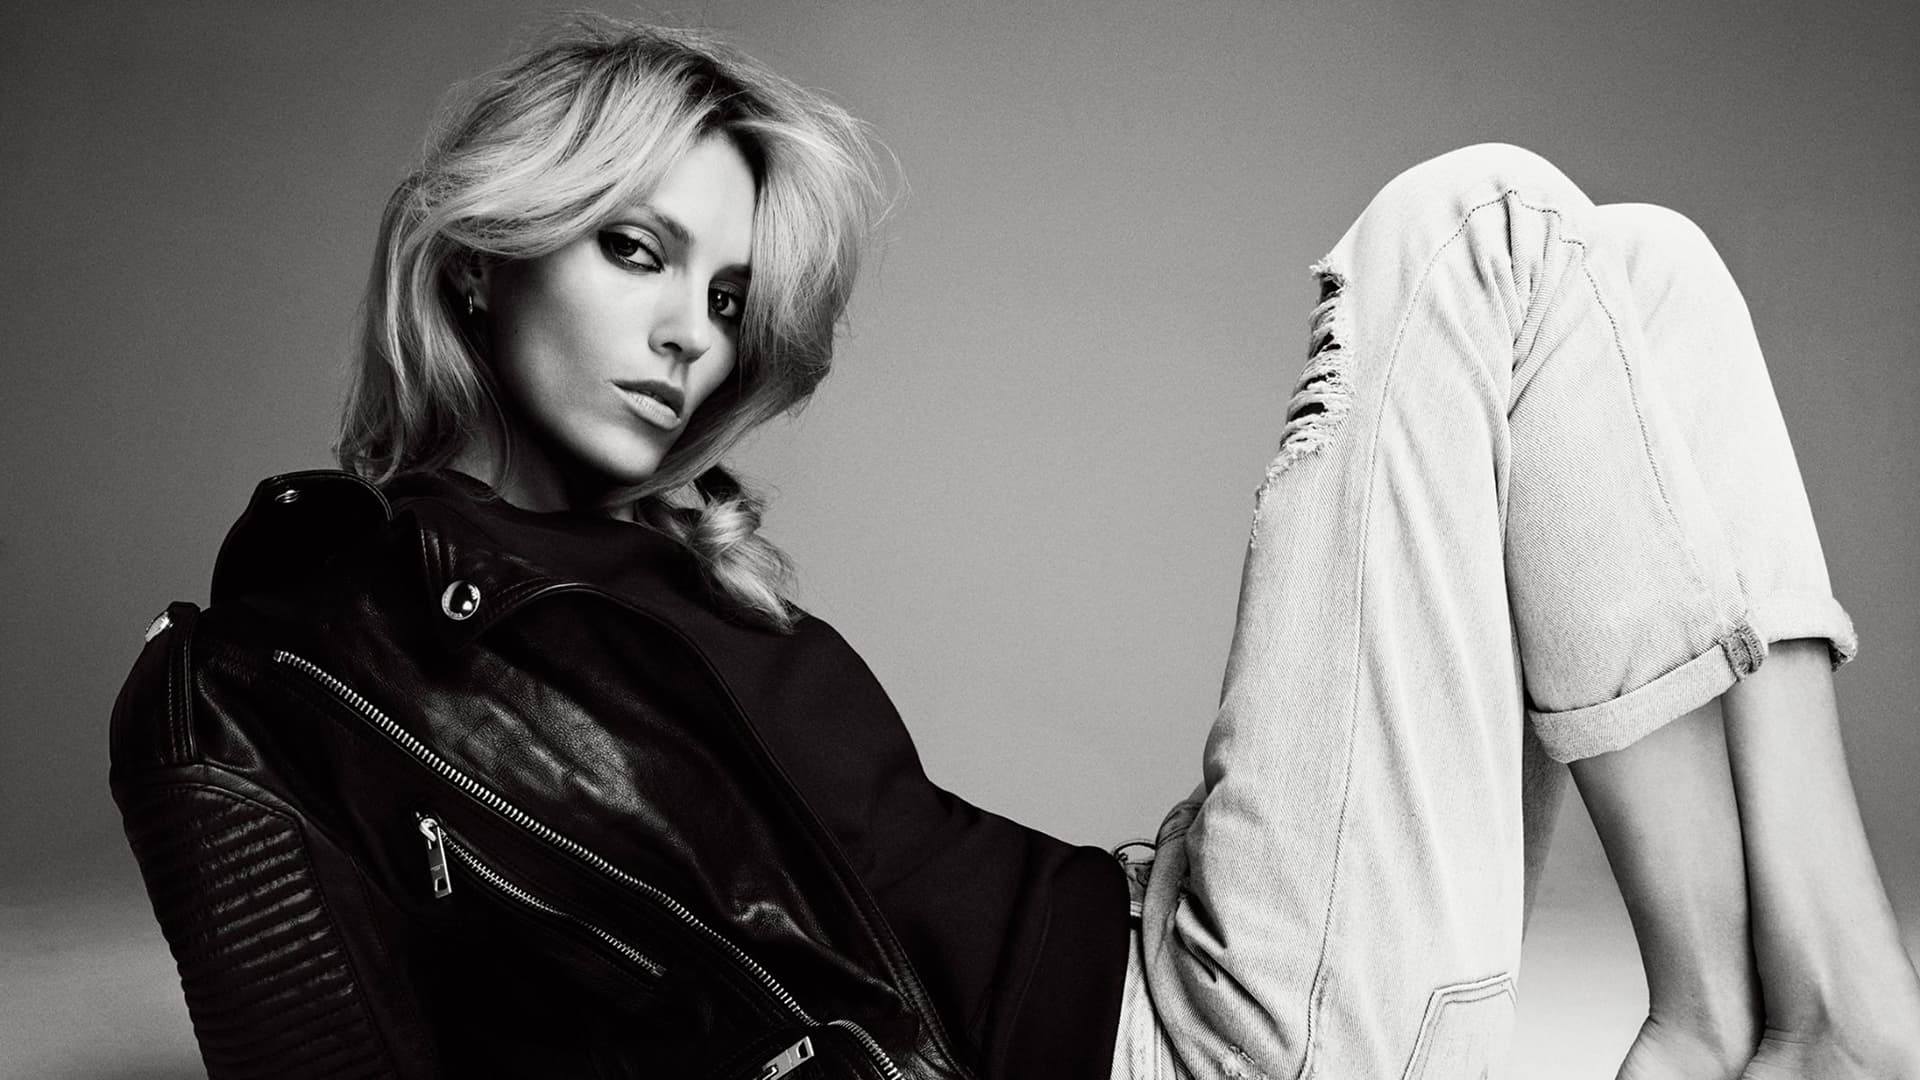 Hd Wallpapers Of Girls And Cars Anja Rubik Wallpapers Hd High Quality Resolution Download